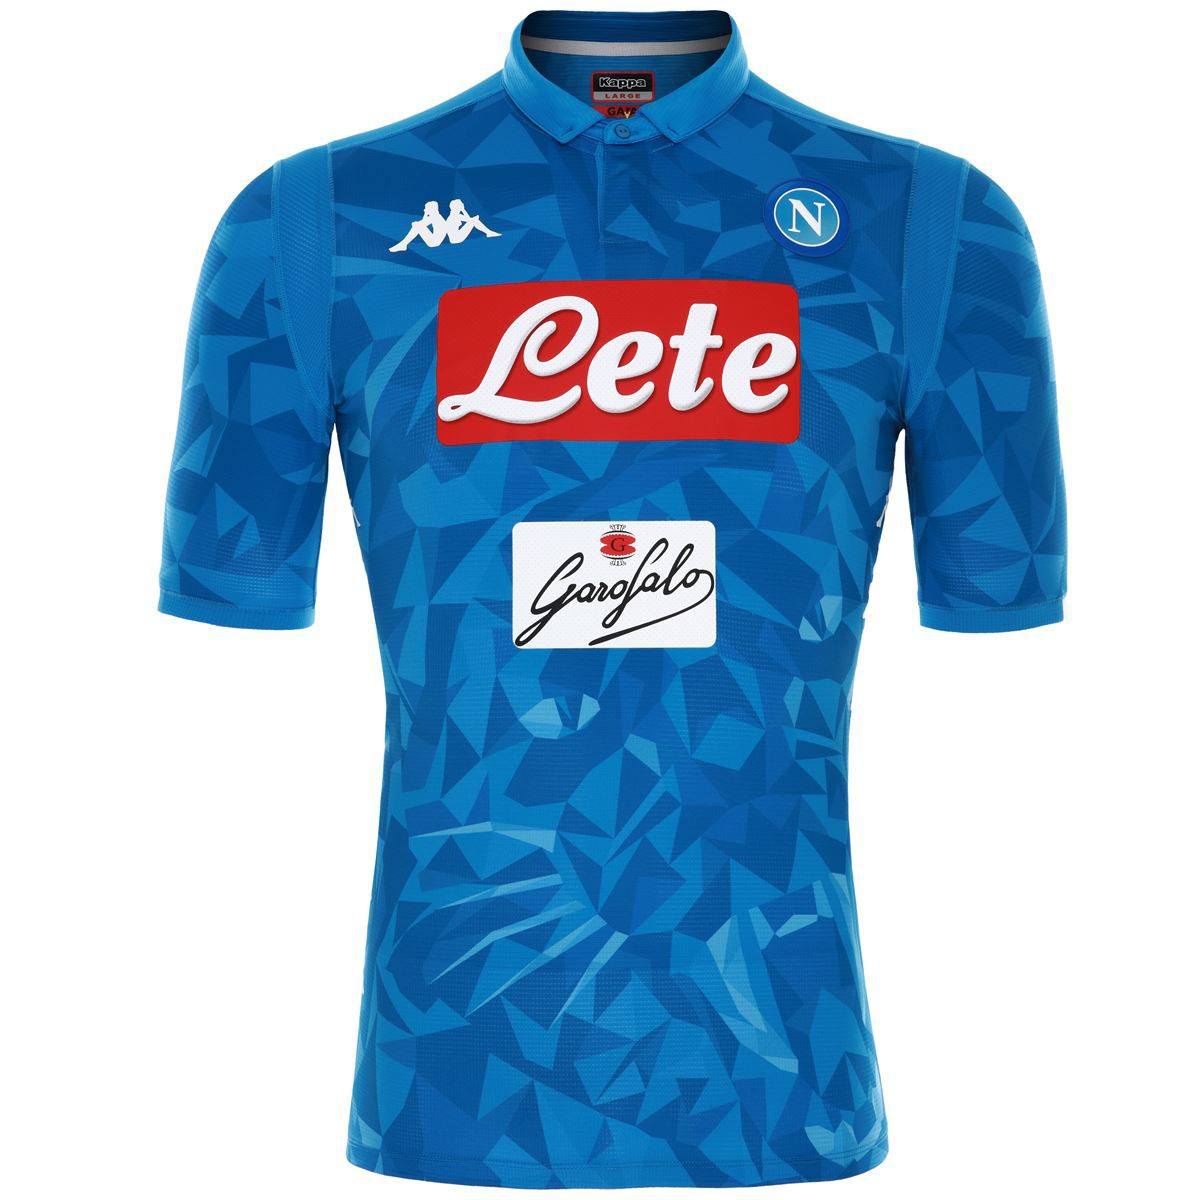 Napoli home jersey